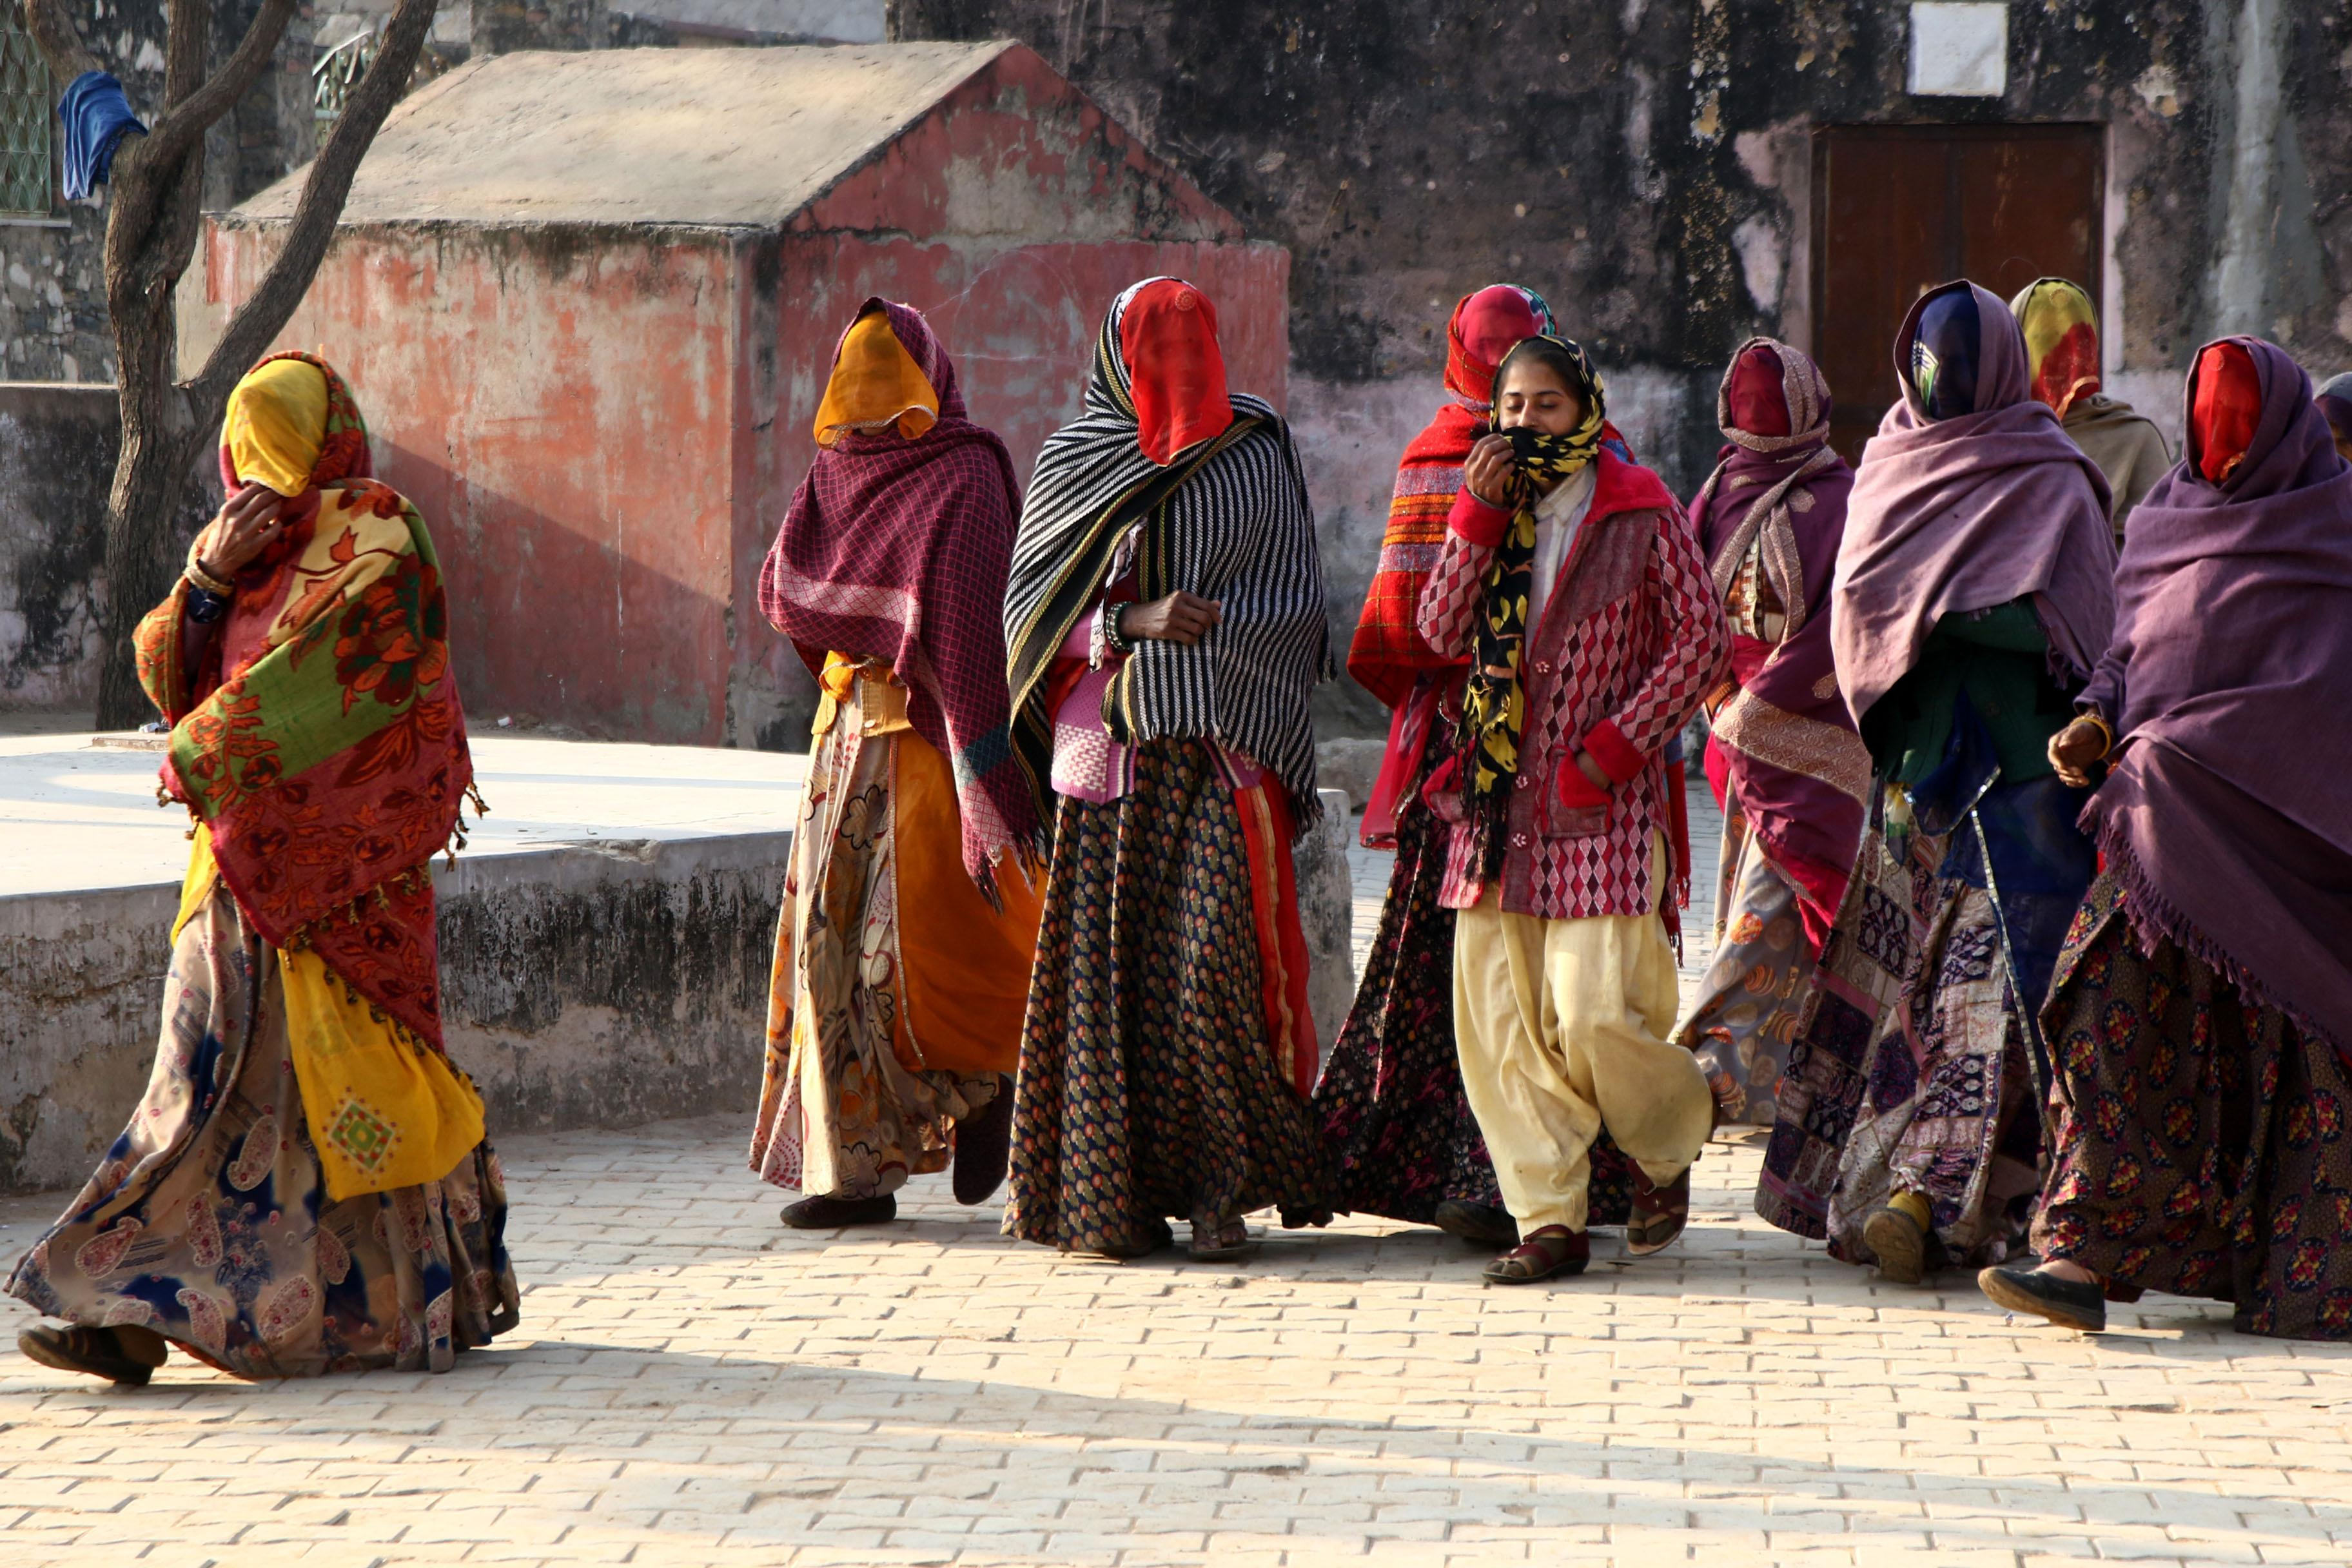 Rajasthan's women encouraged to remove veil in state campaign